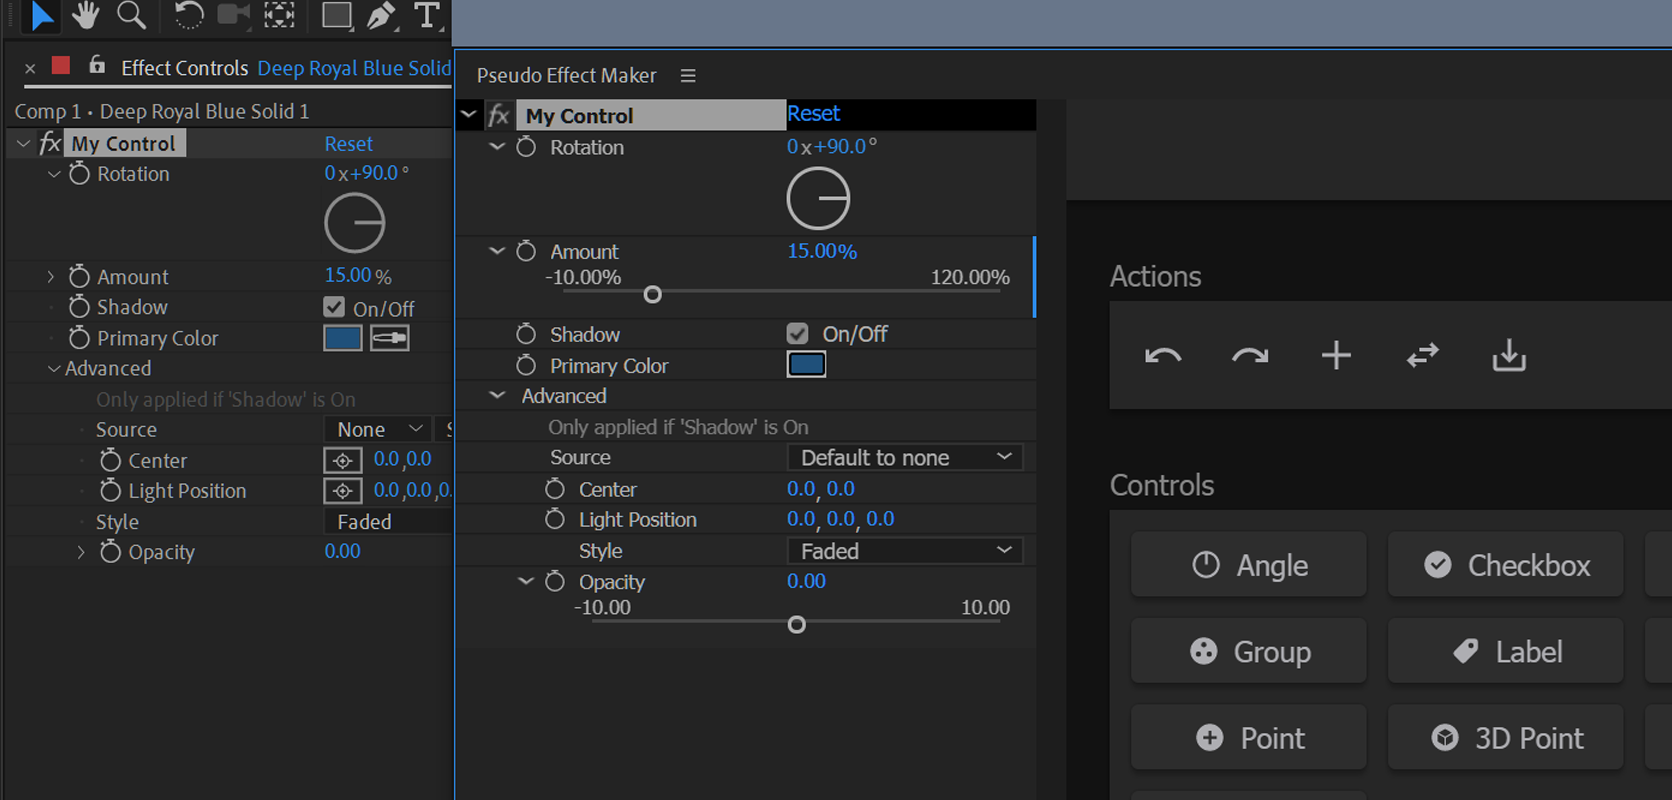 The Pseudo Effect Maker interface next to the applied control in the effect panel